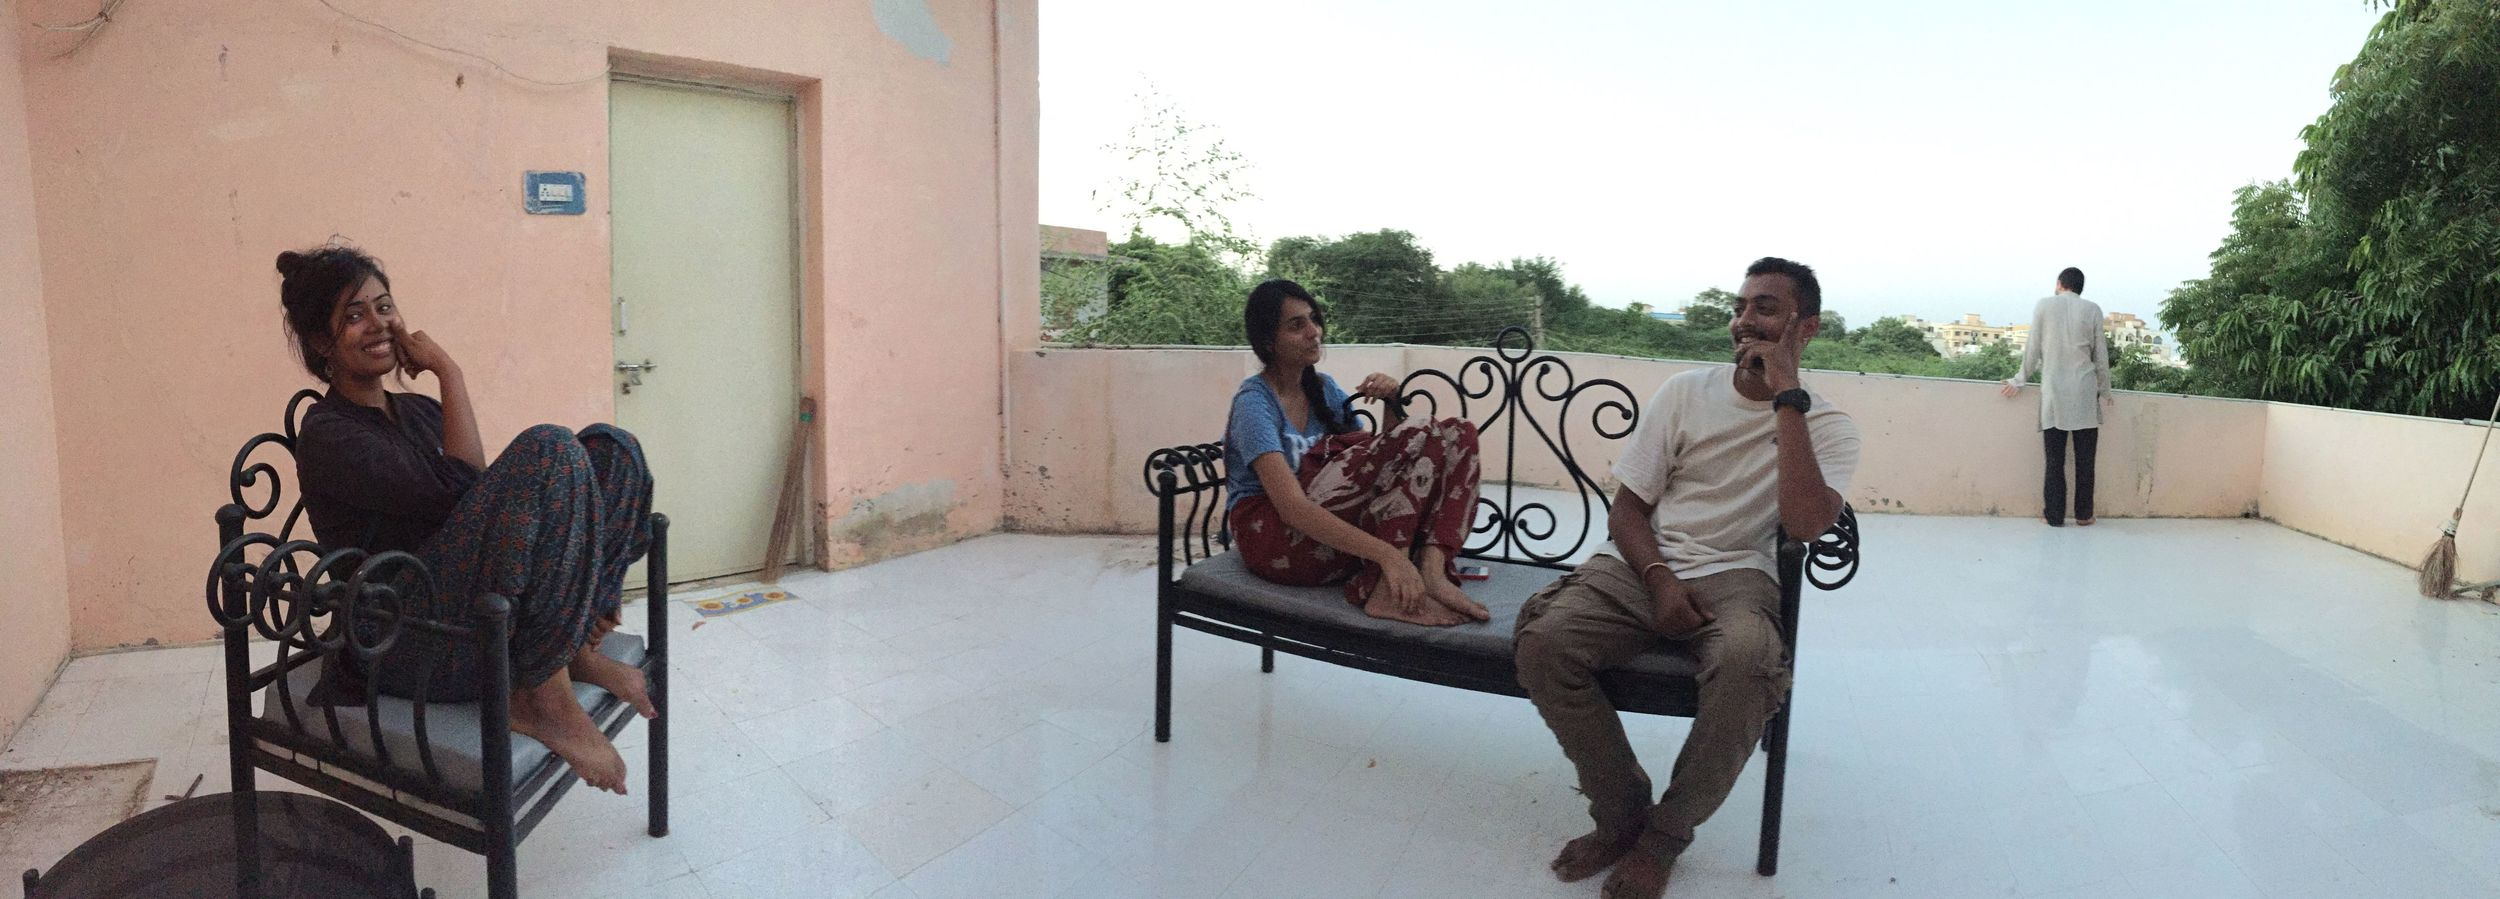 Hanging out with new friends on our terrace